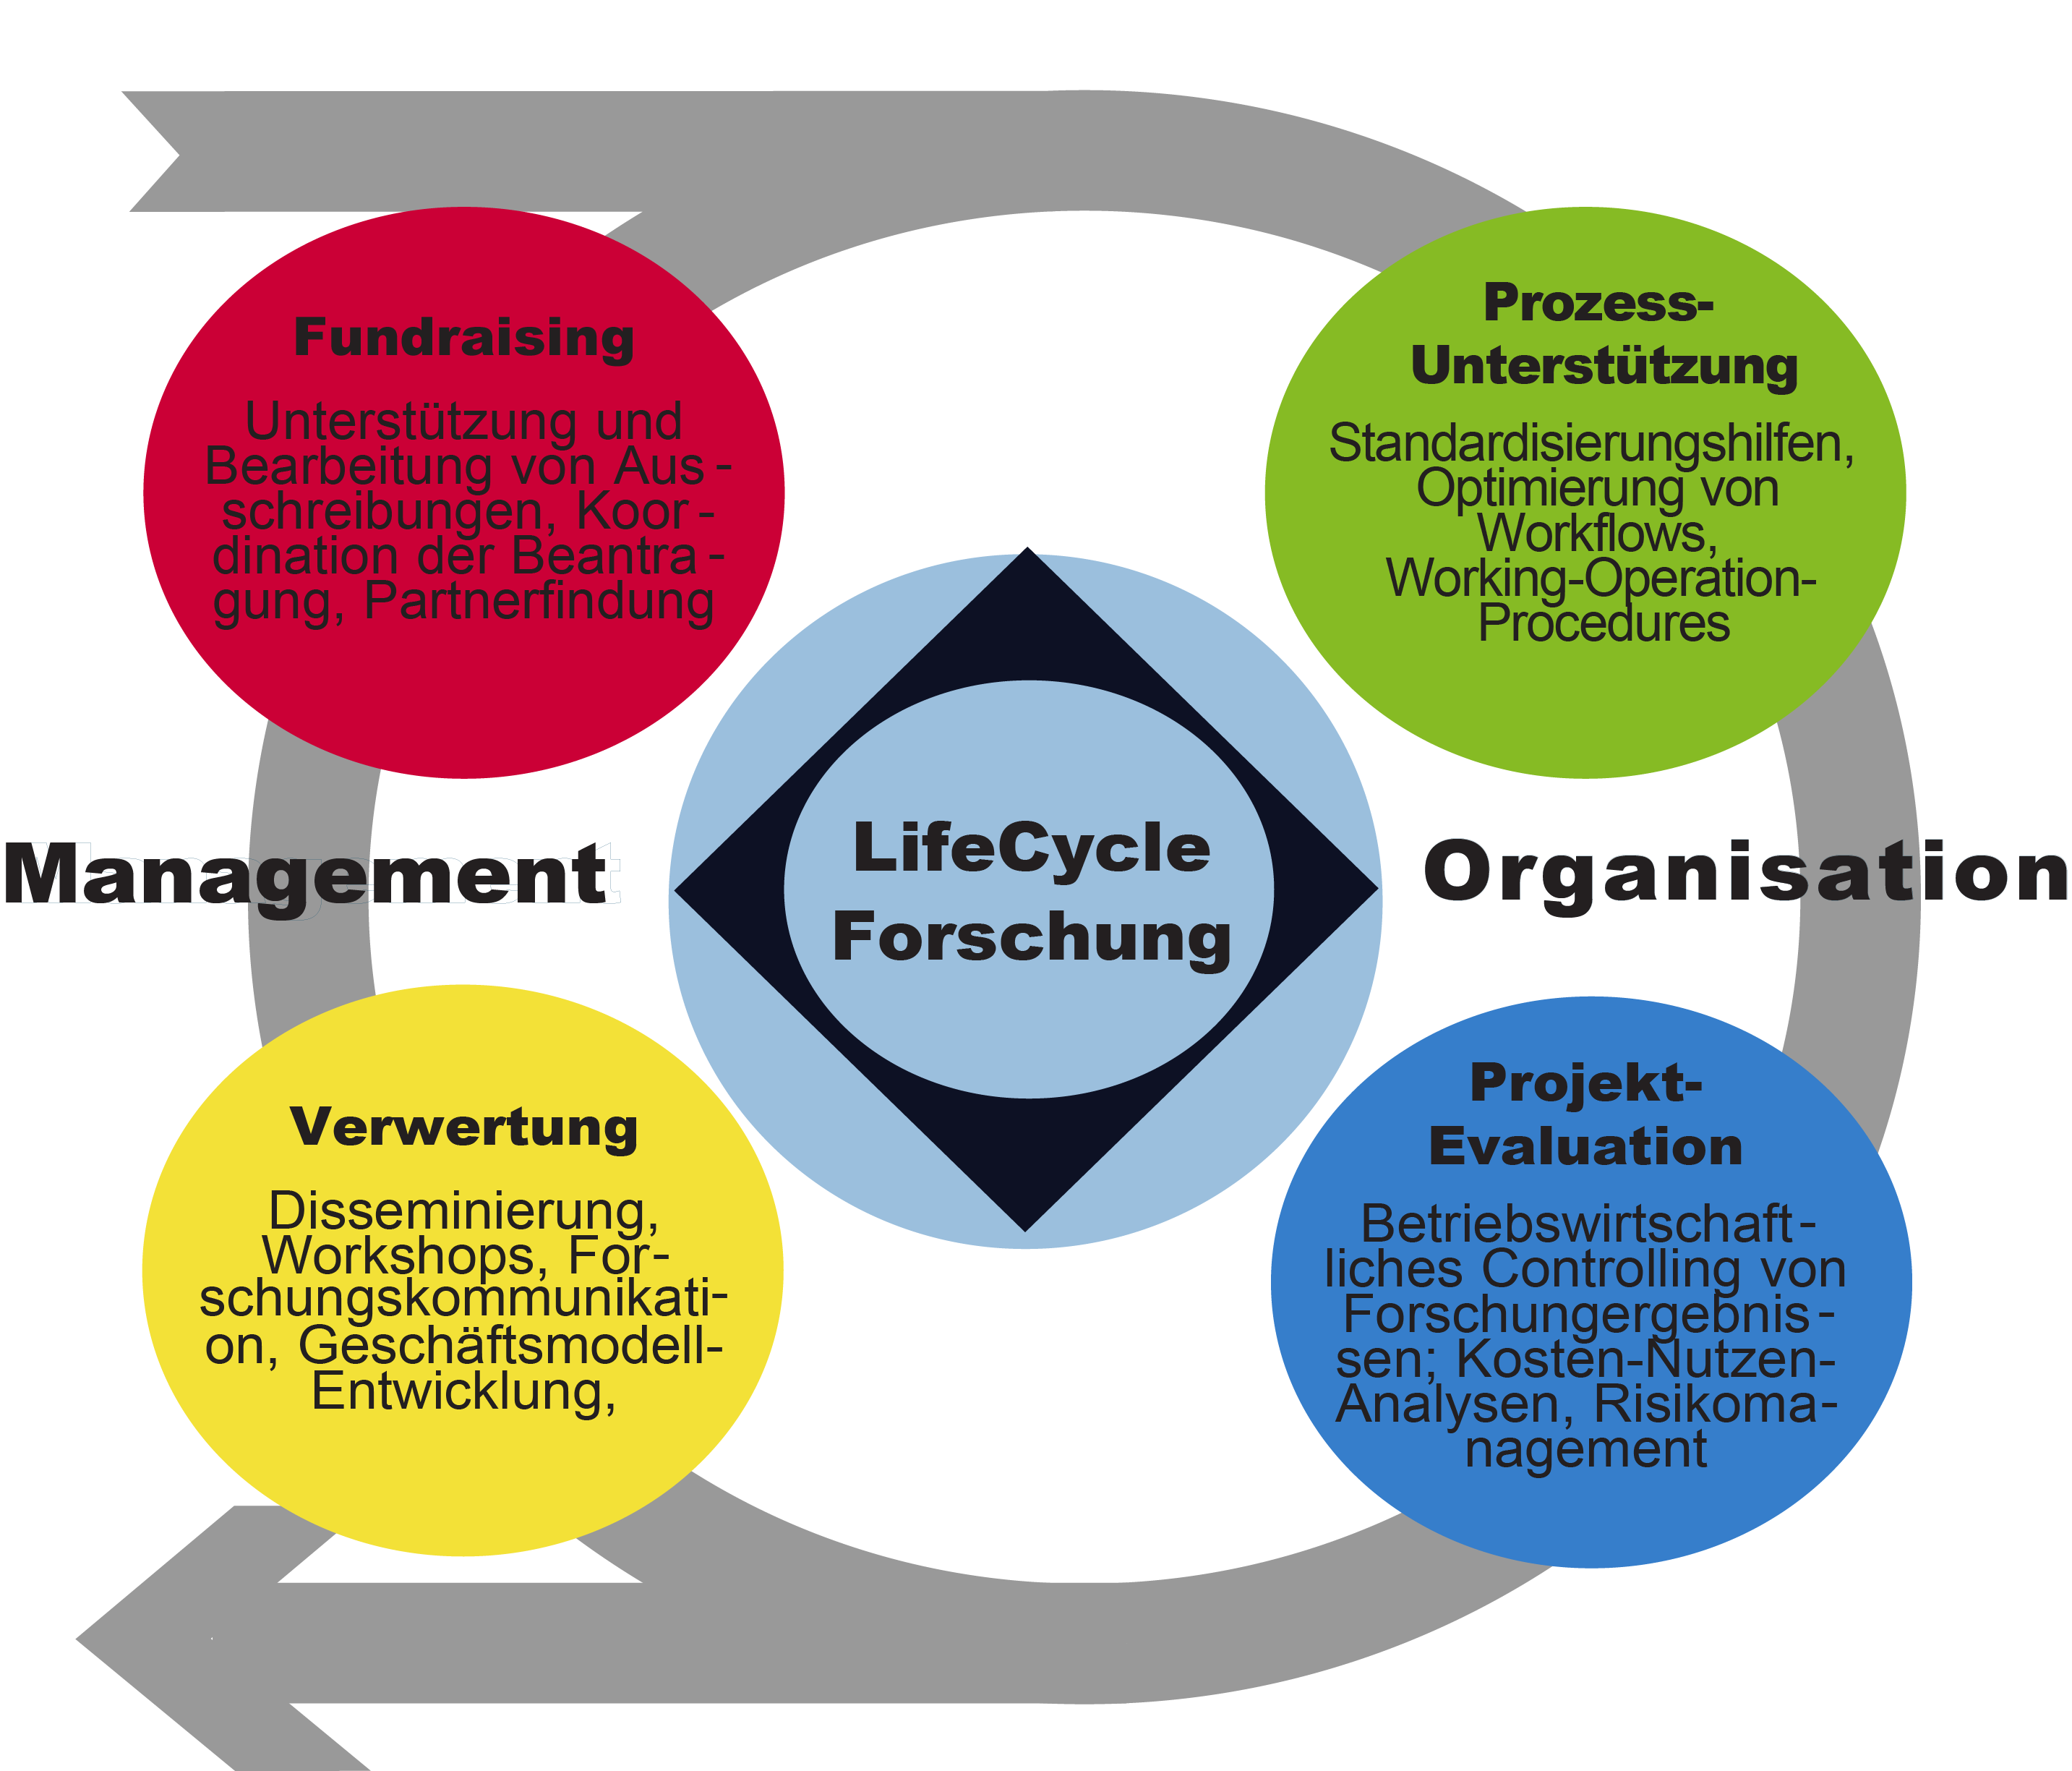 Life-Cycle-Forschung